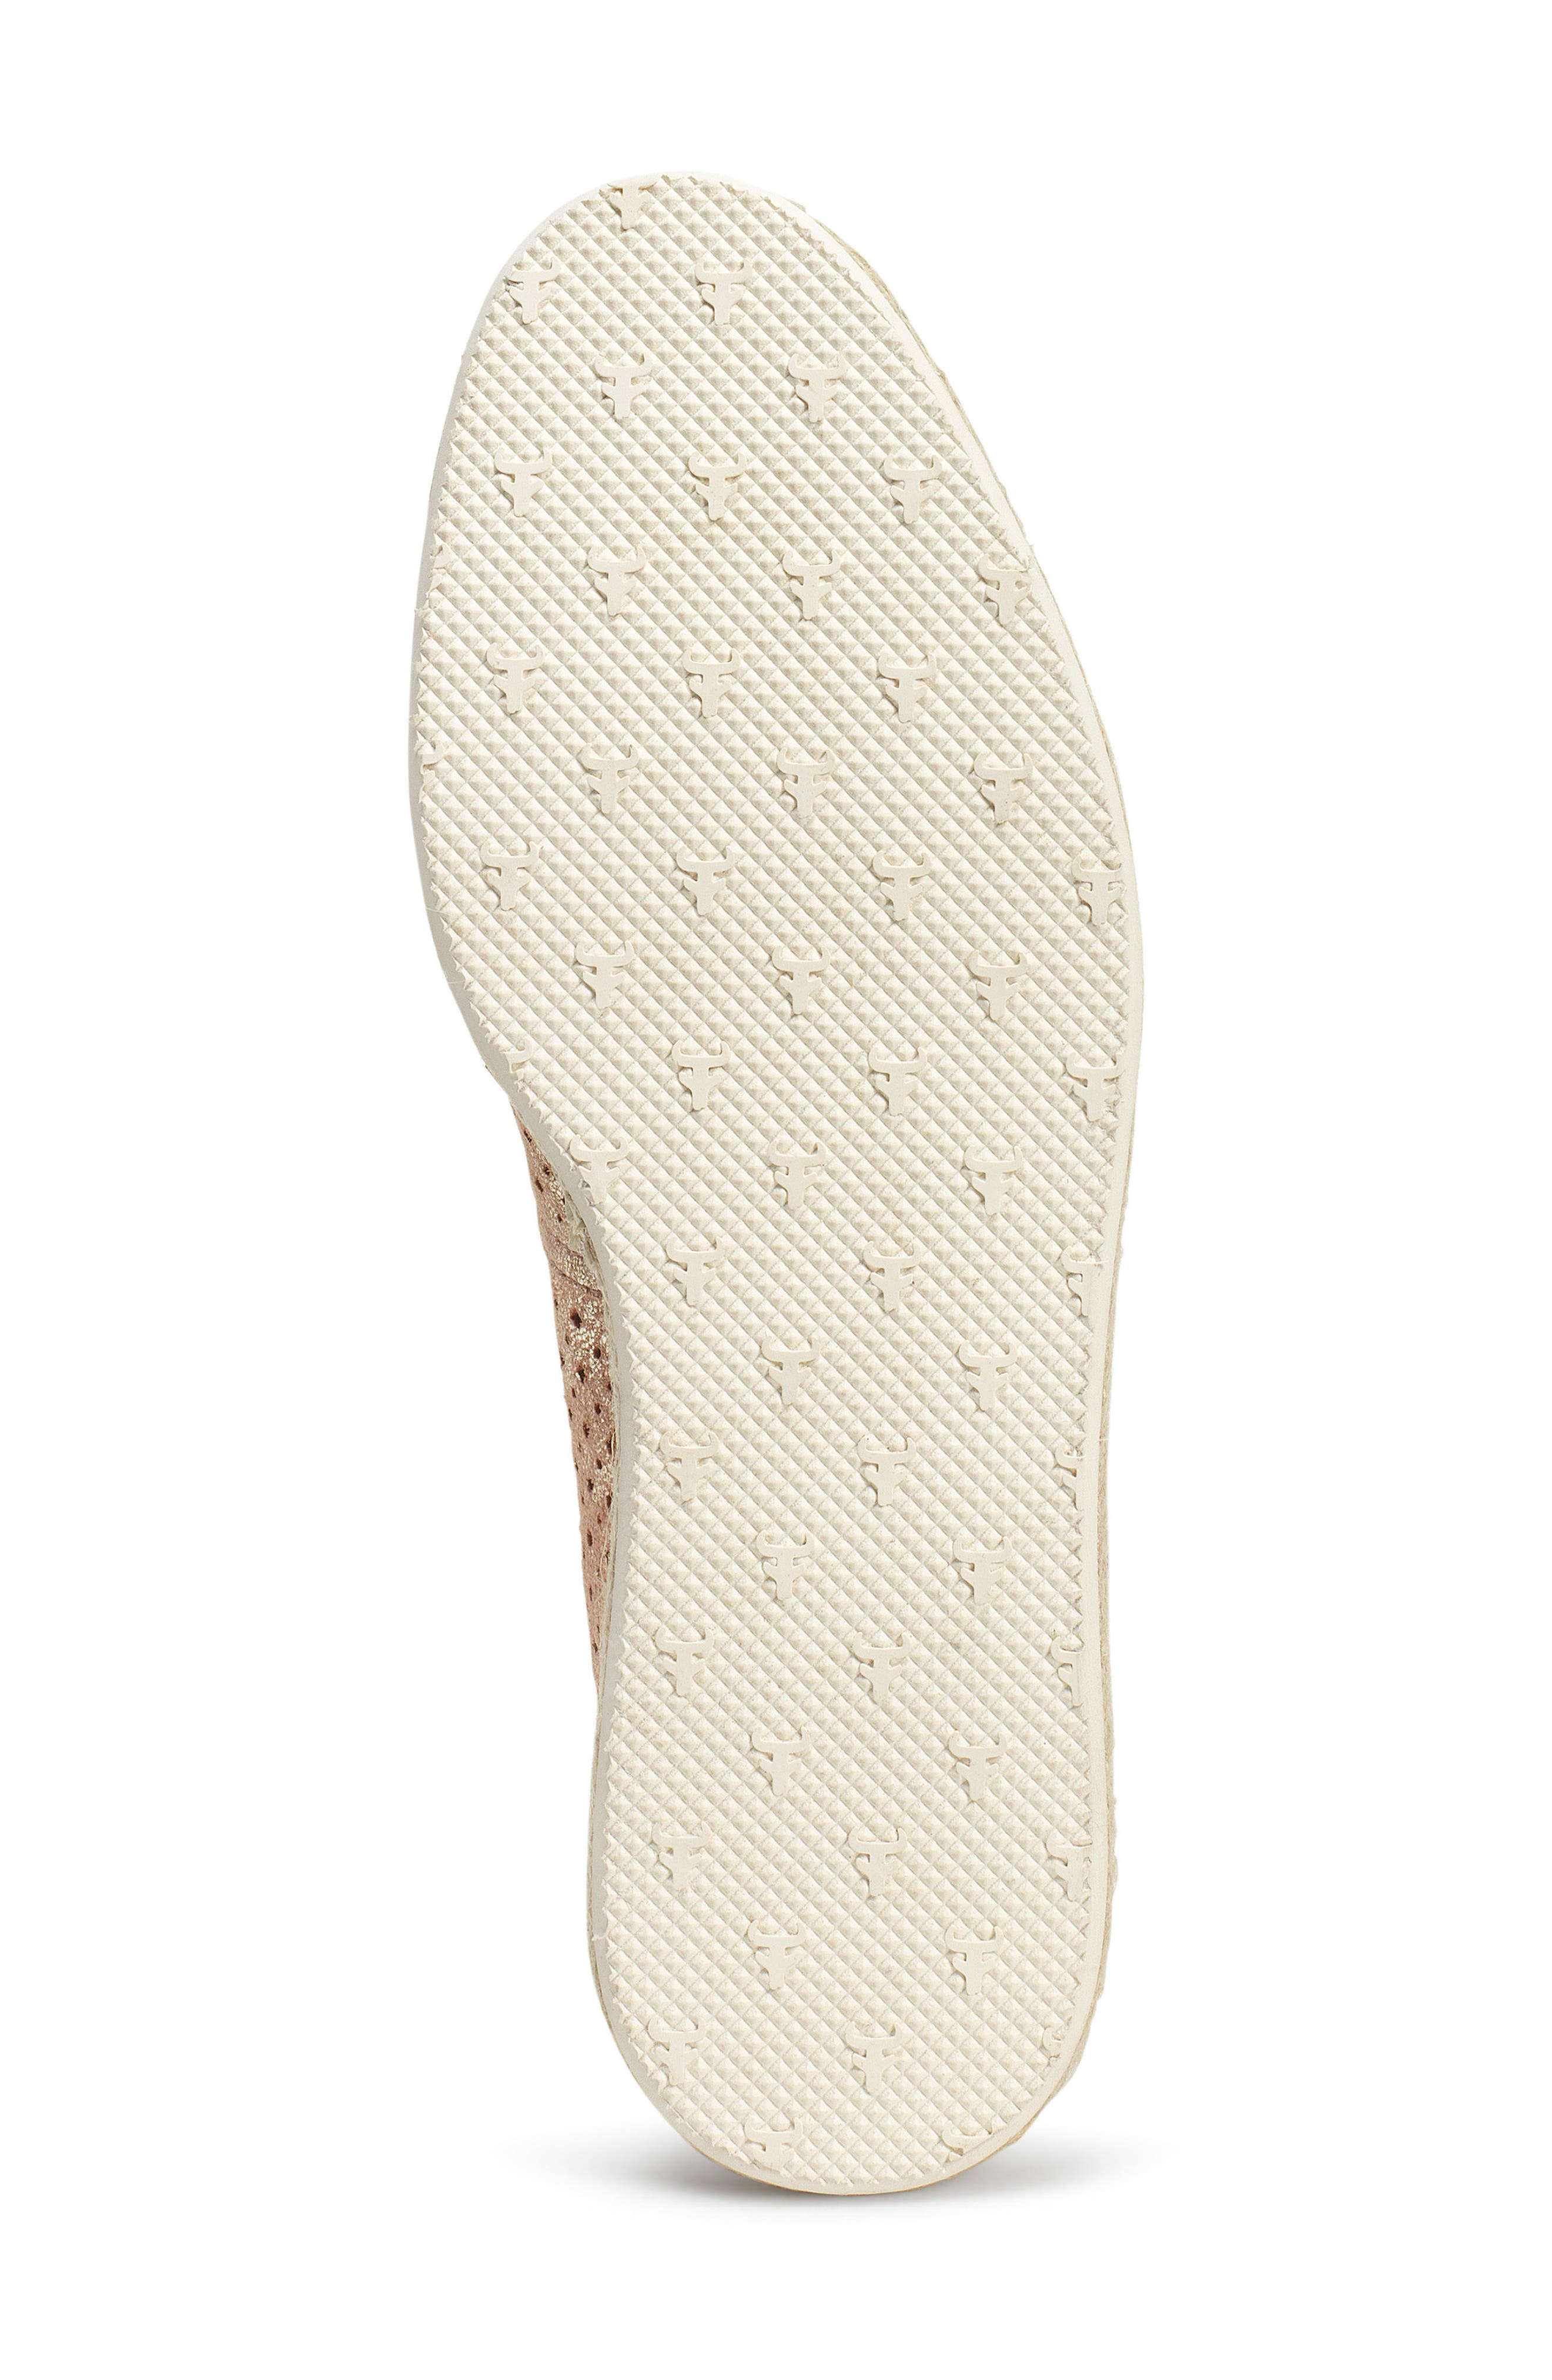 Paige Perforated Flat,                             Alternate thumbnail 6, color,                             Blush Metallic Suede